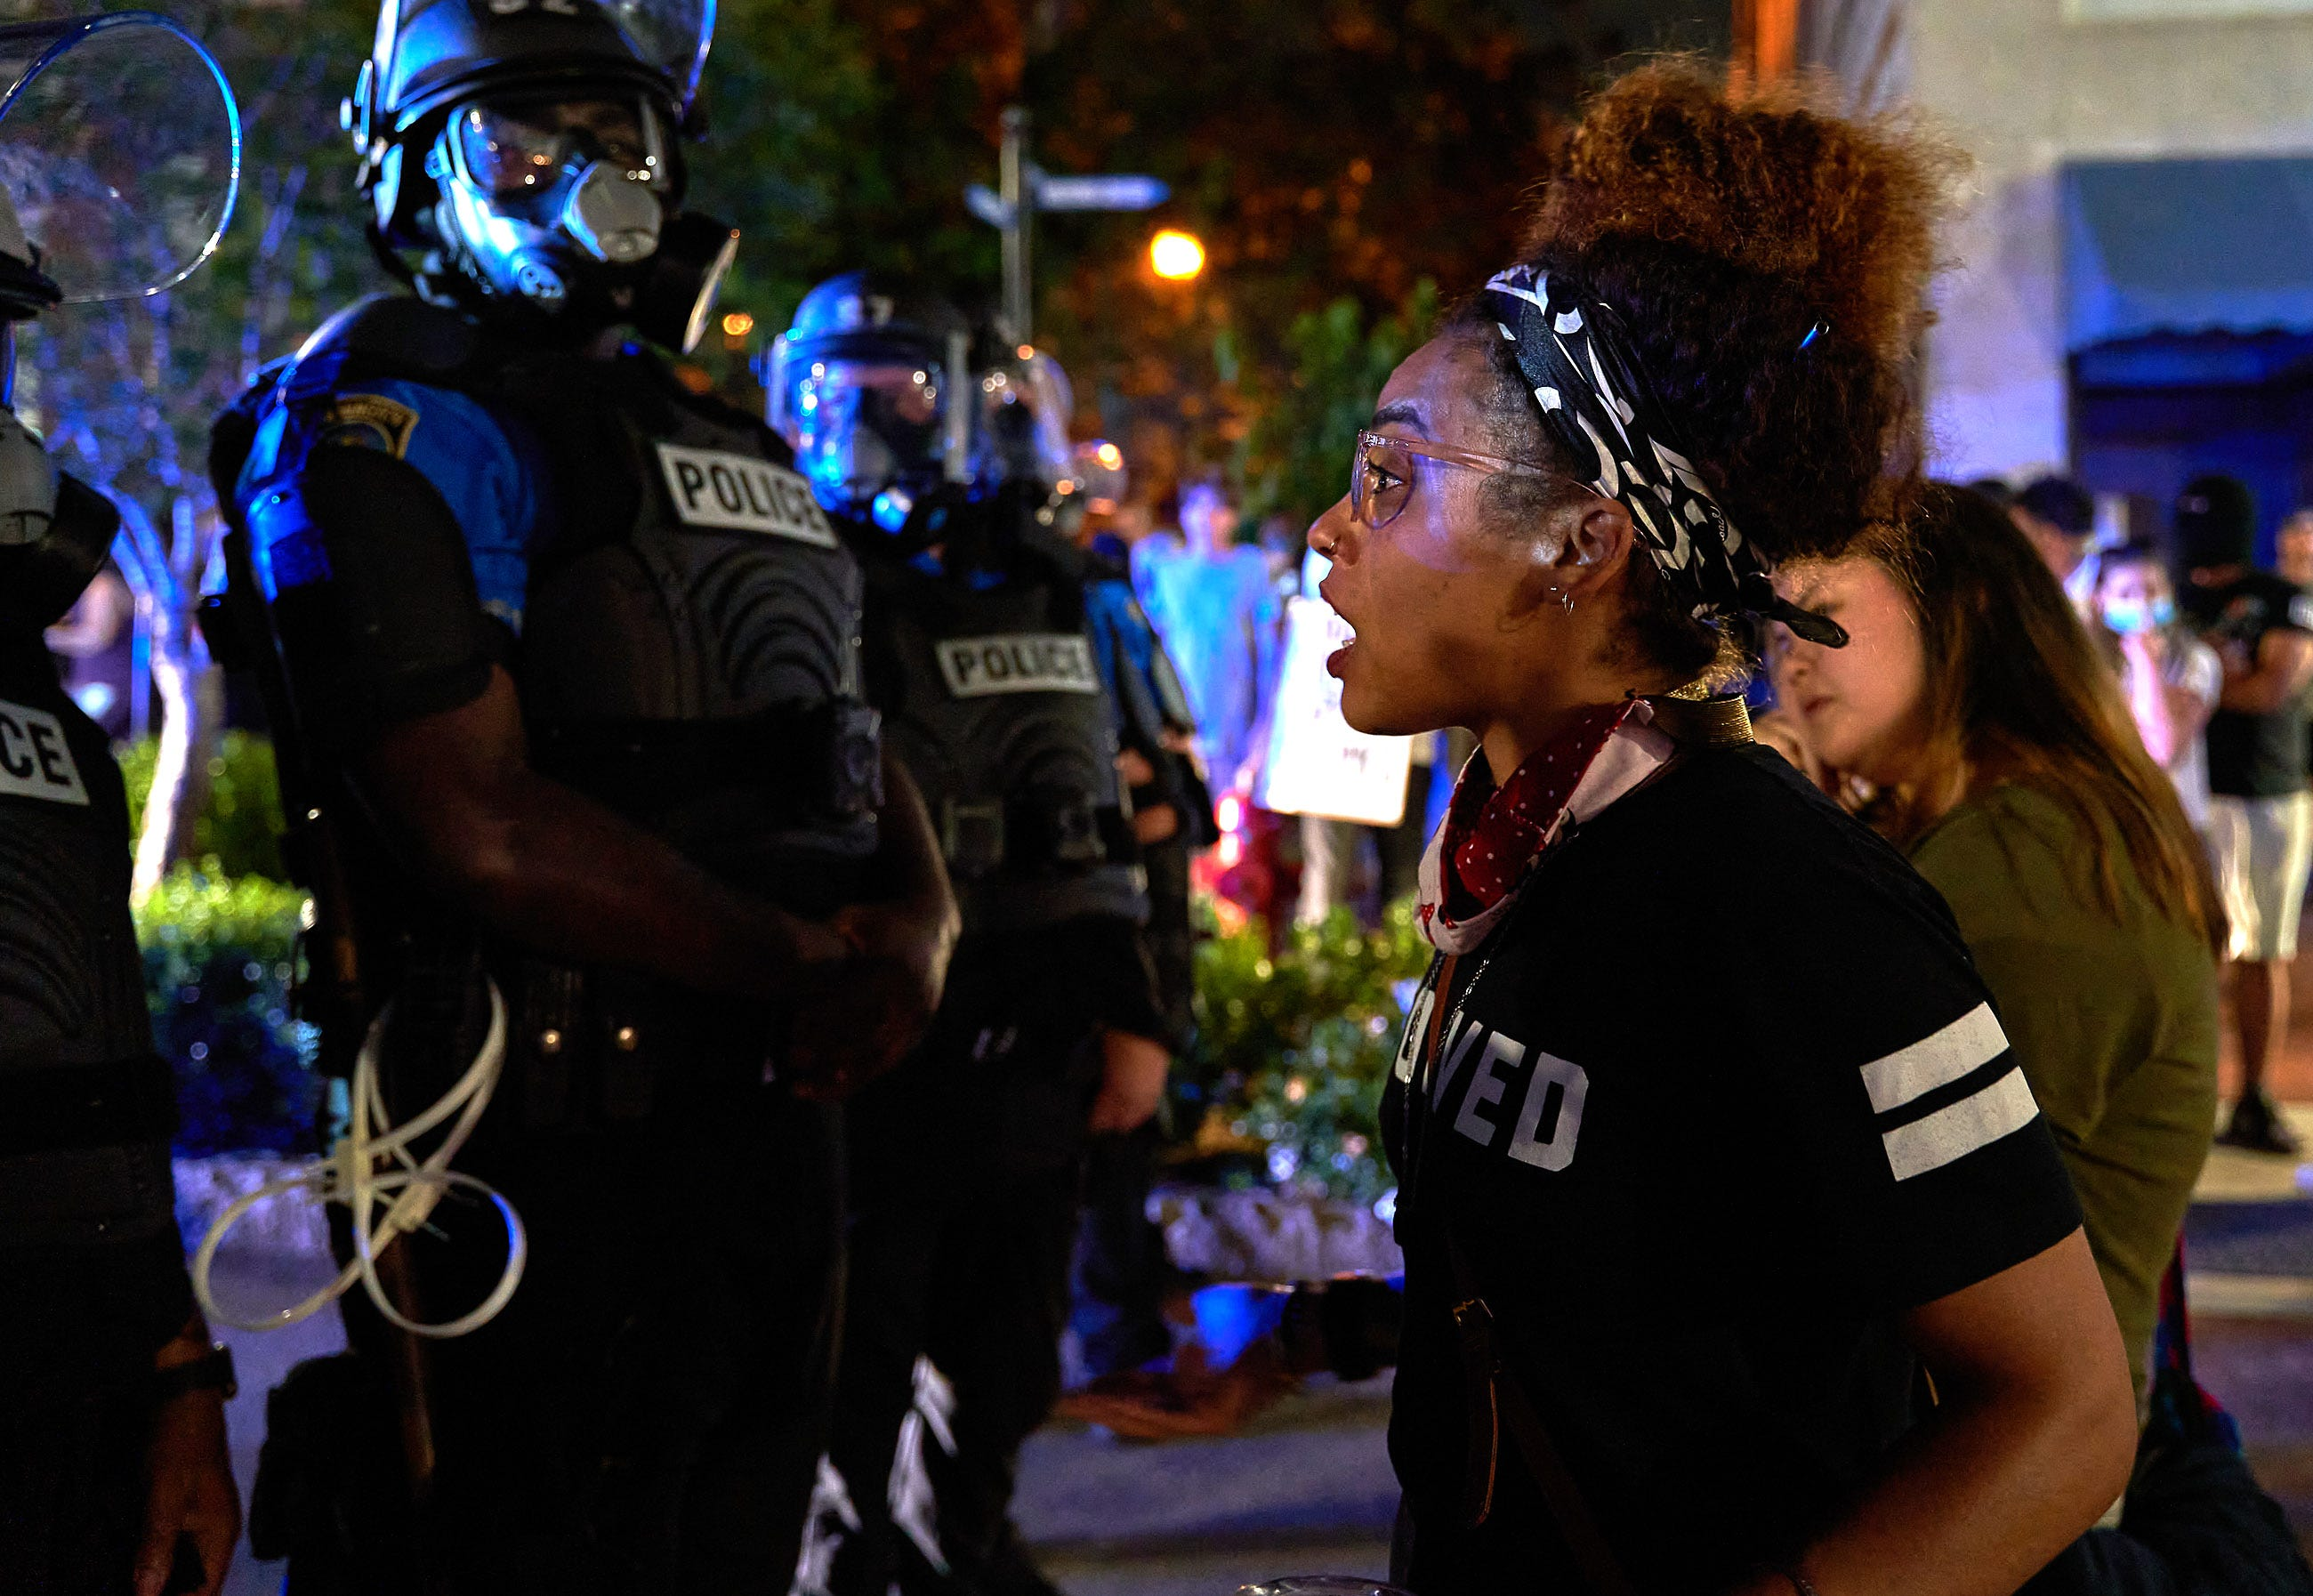 Lily Nicole talks with officers with the Wilmington Police Department during a confrontation between protestors and police in downtown Wilmington, N.C., Sunday, May 31, 2020. The protest turned confrontational as protesters and police clashed a day after a peaceful protest was held to show solidarity with George Floyd.